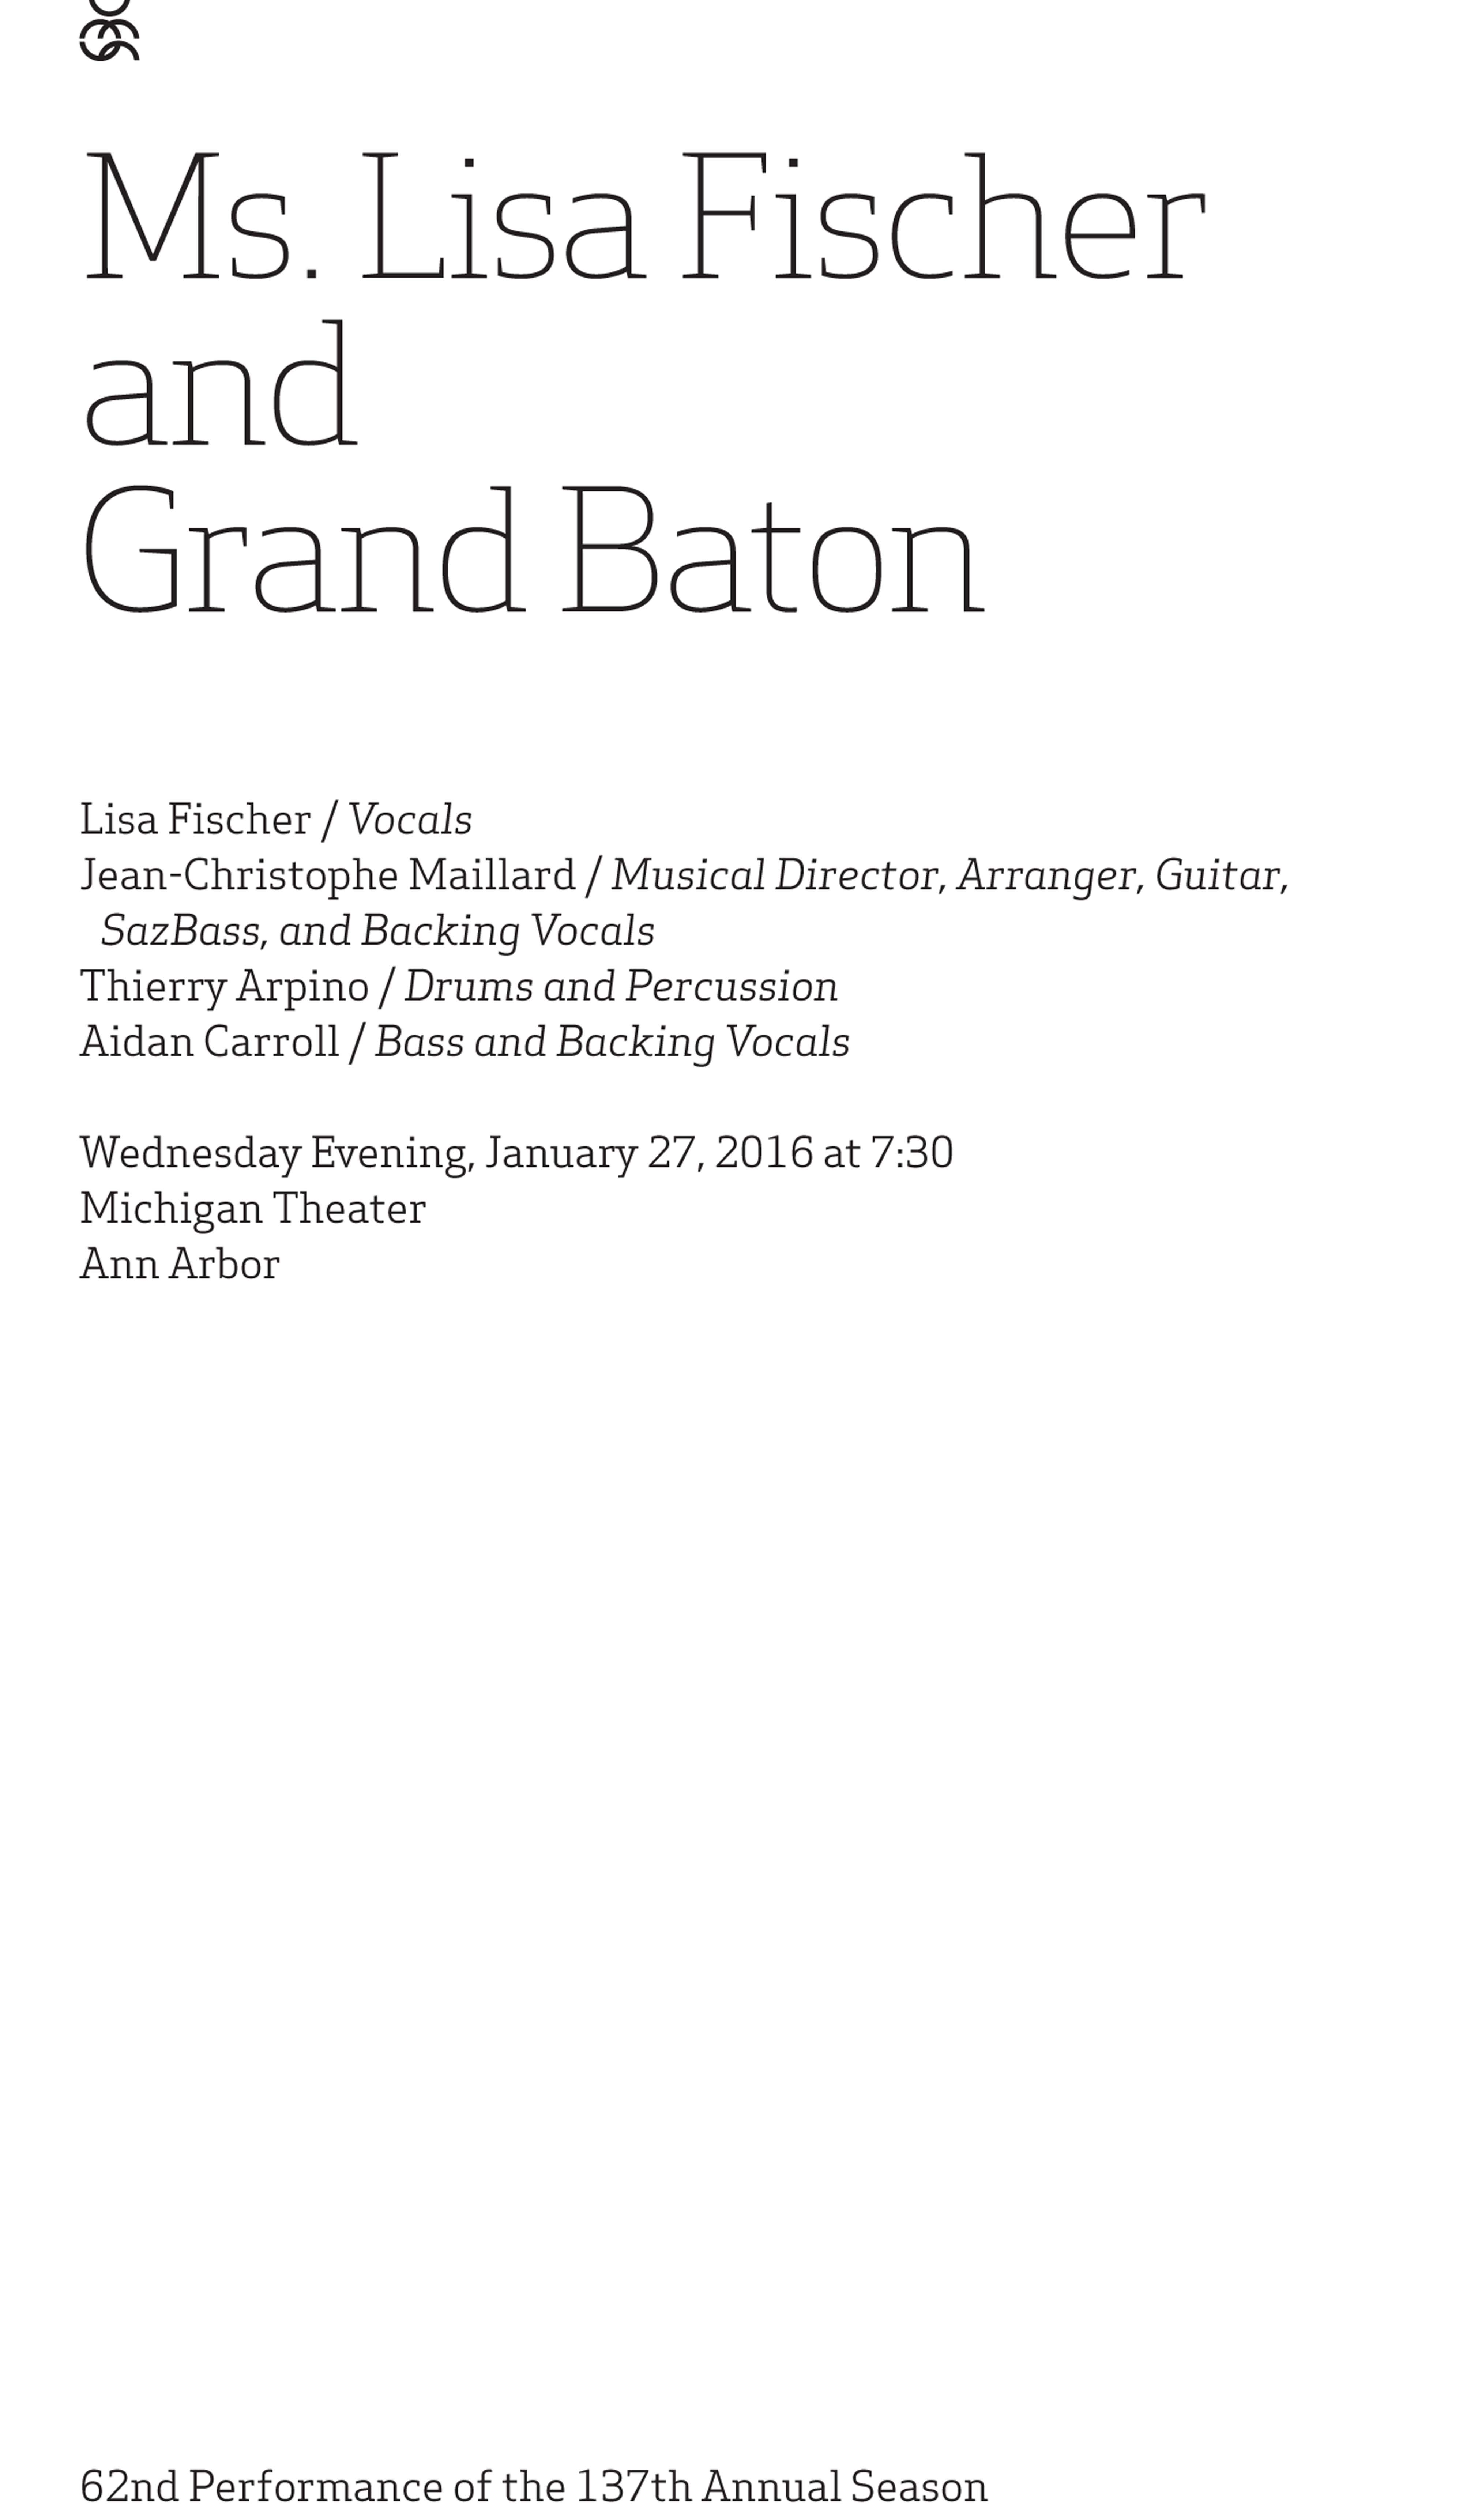 UMS Concert Program, January 27, 2016 - Ms. Lisa Fischer and Grand Baton image